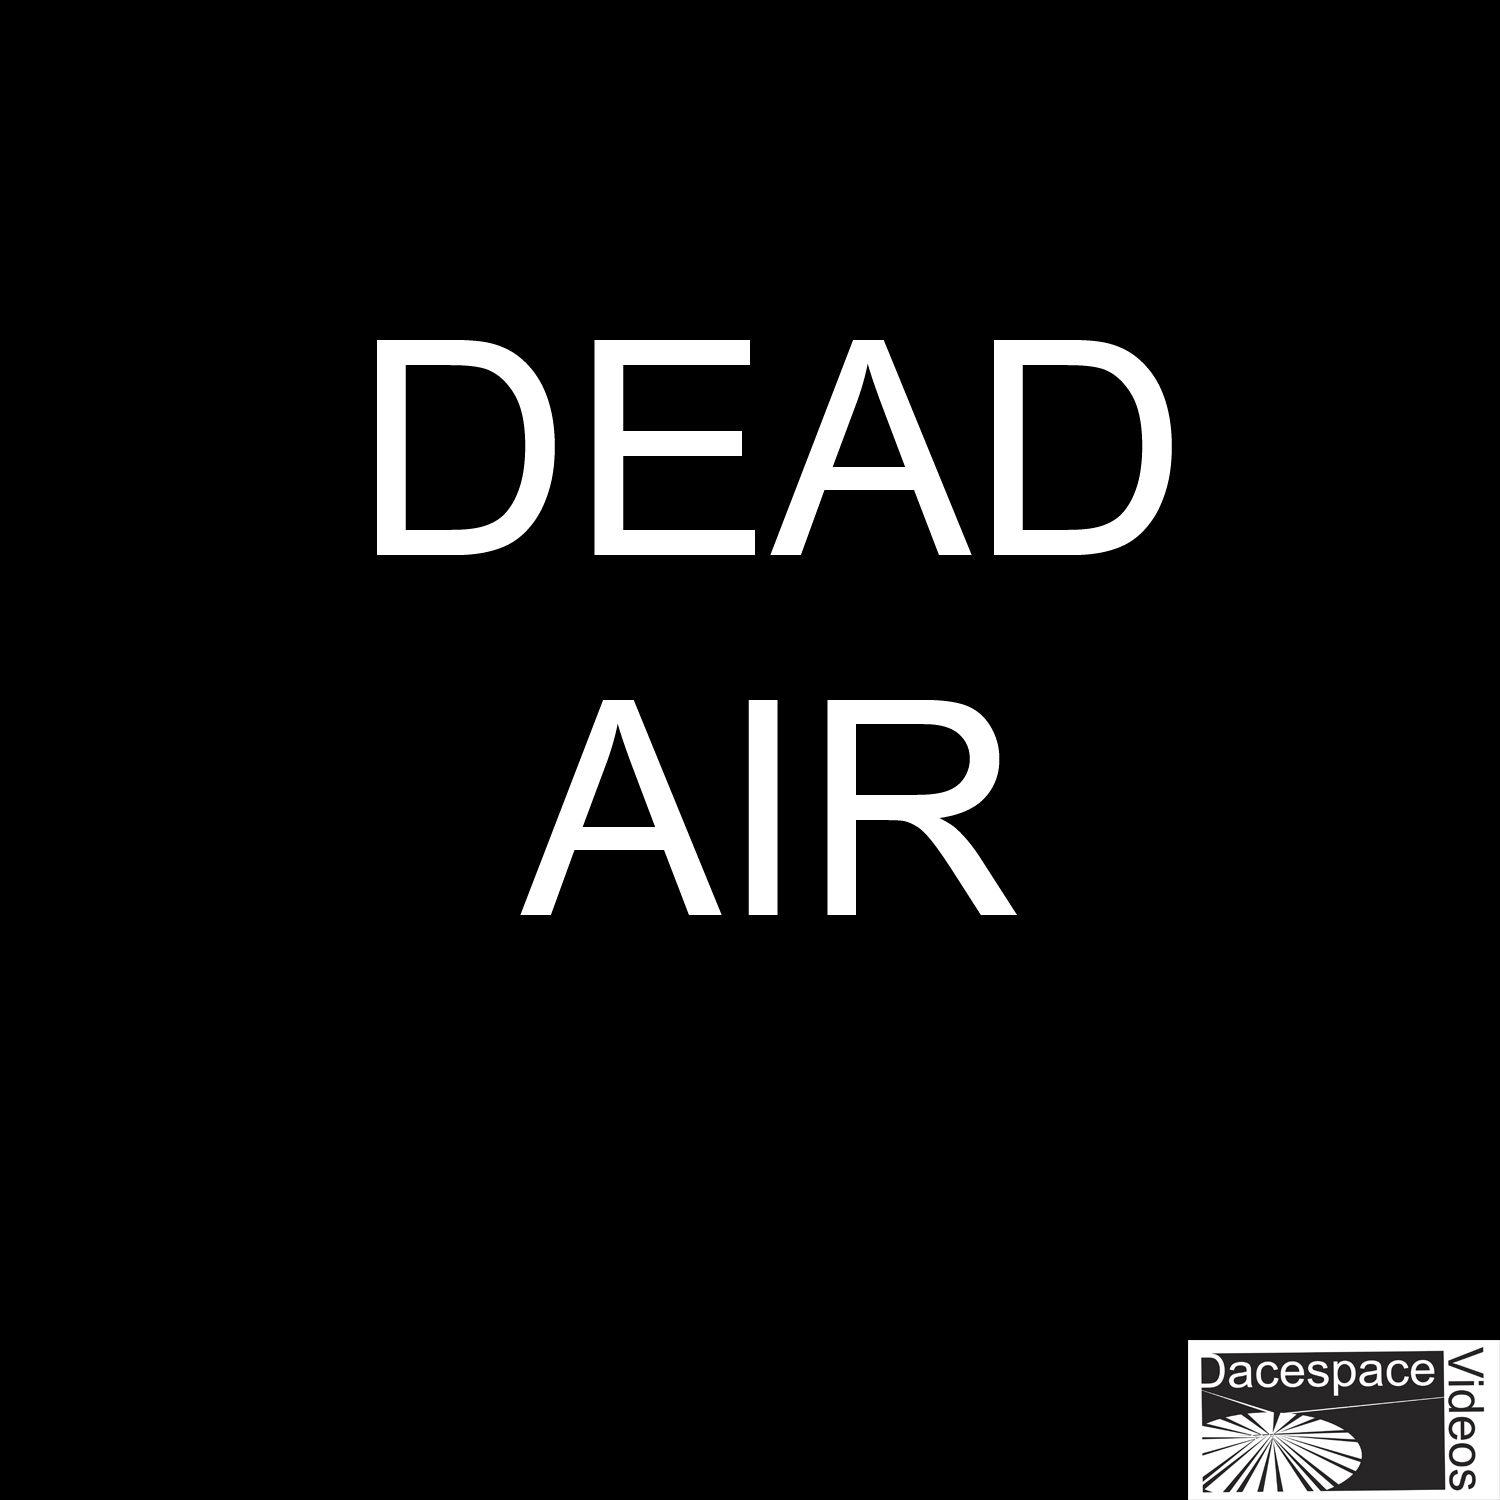 Dead Air - Dacespace.com